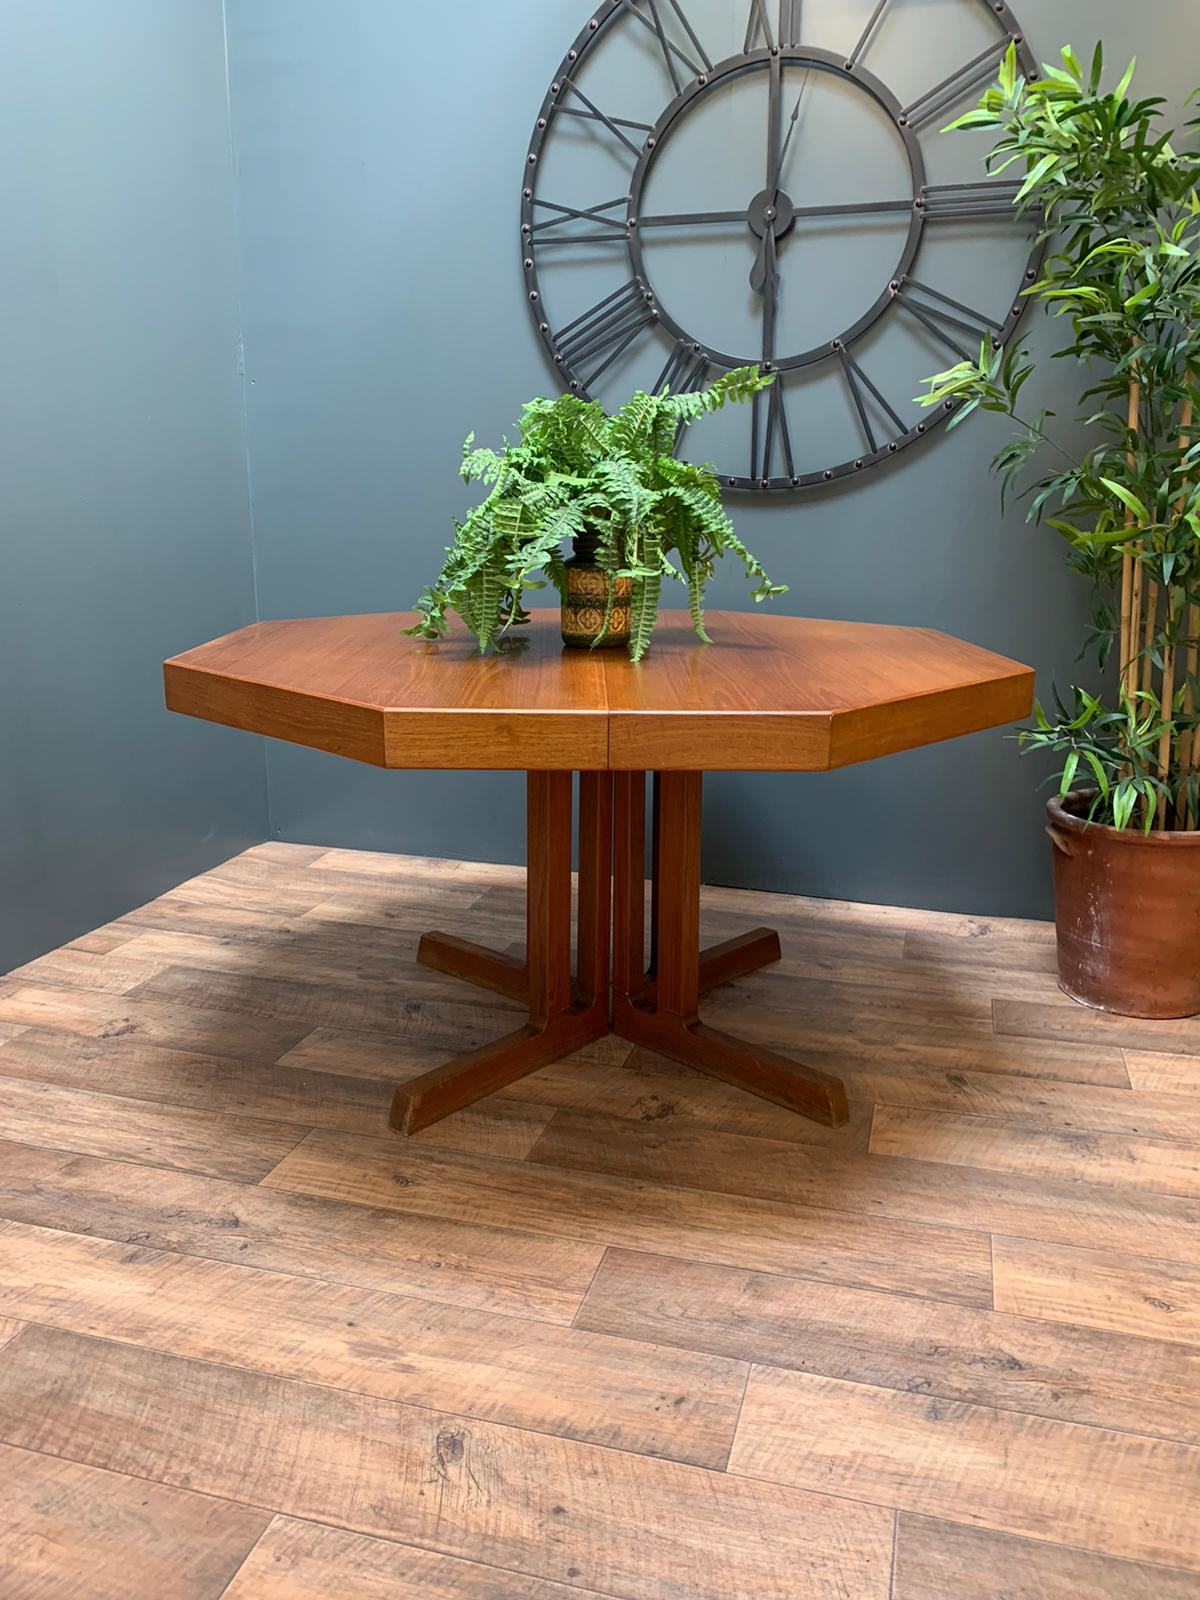 Image of Danish dining table